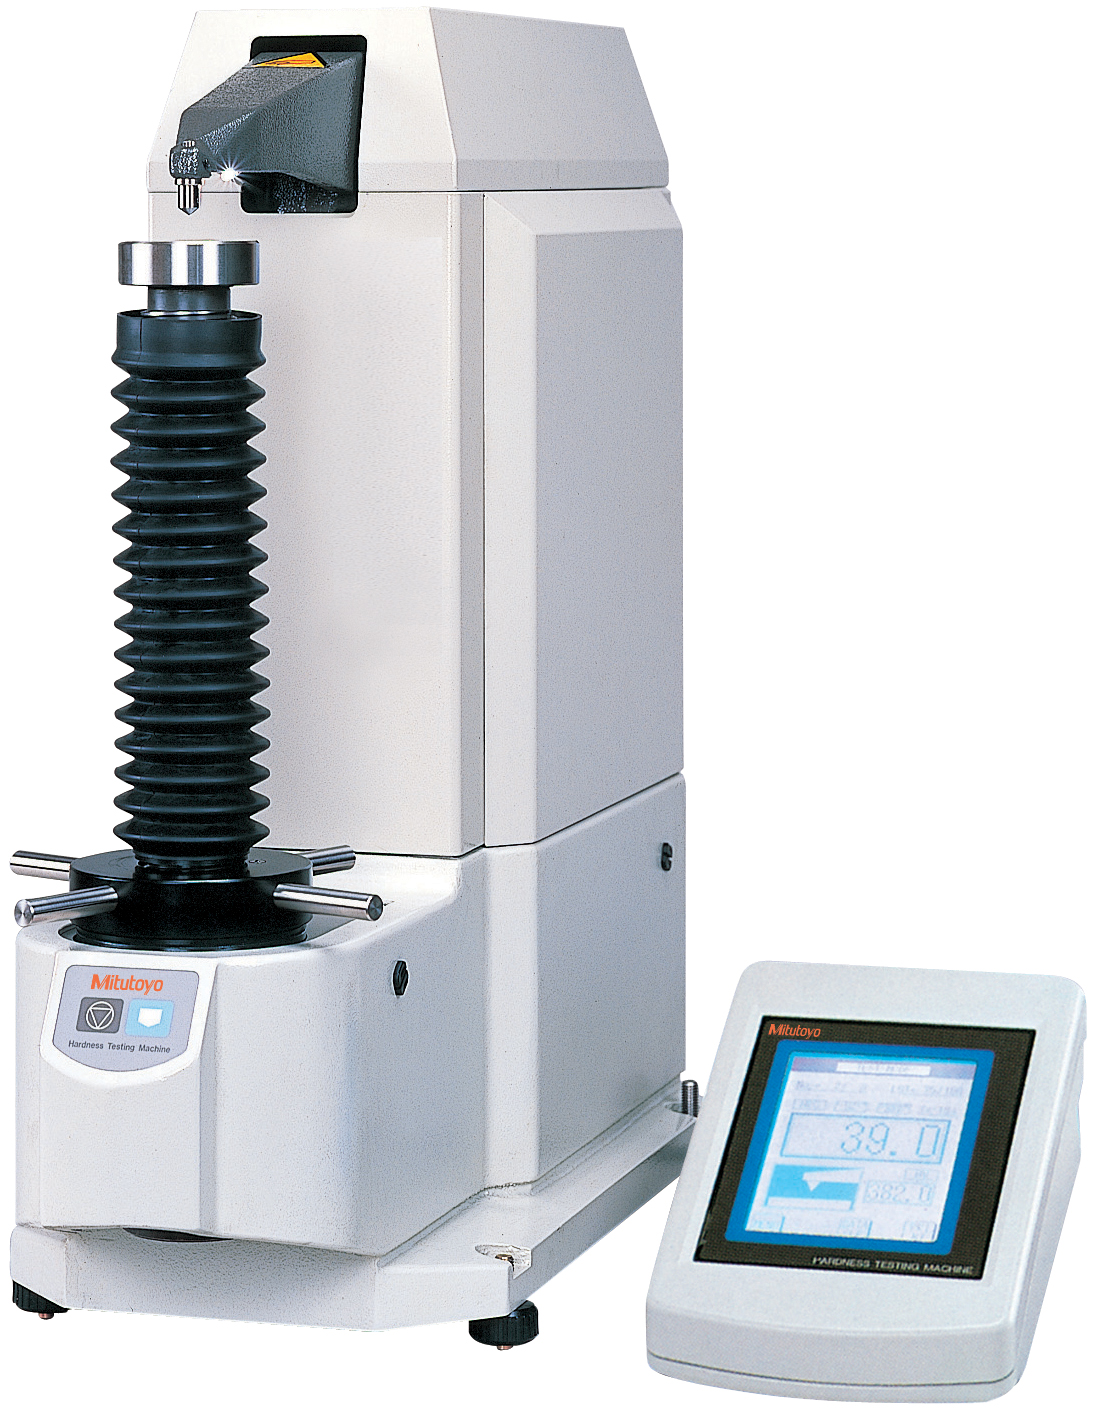 Mitutoyo HR-521/HR-523 Digital Rockwell Hardness Testers